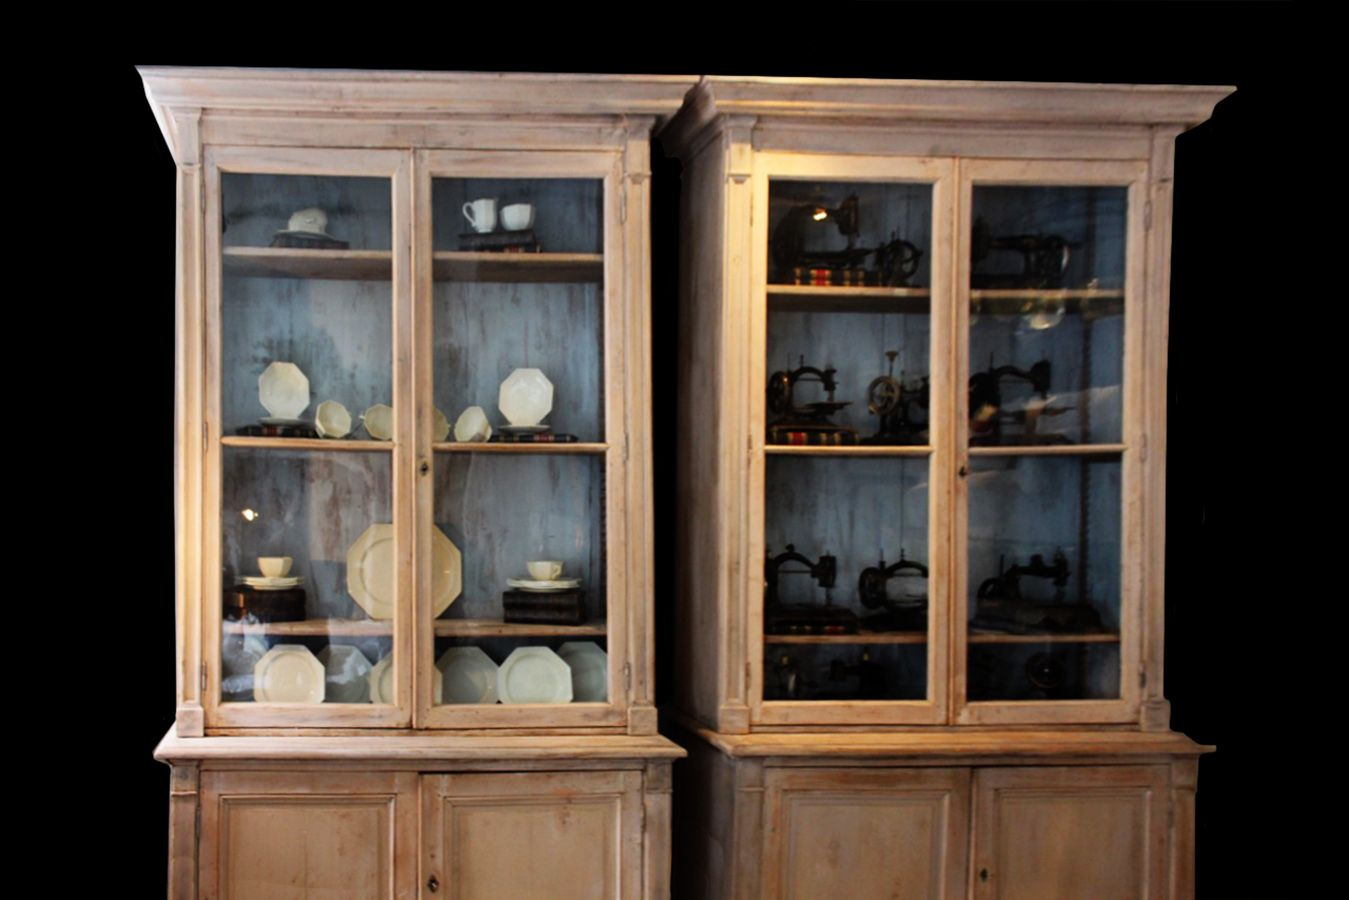 Antique French Pharmacy Cabinets, Set of 2 - Antique French Pharmacy Cabinets, Set Of 2 For Sale At Pamono